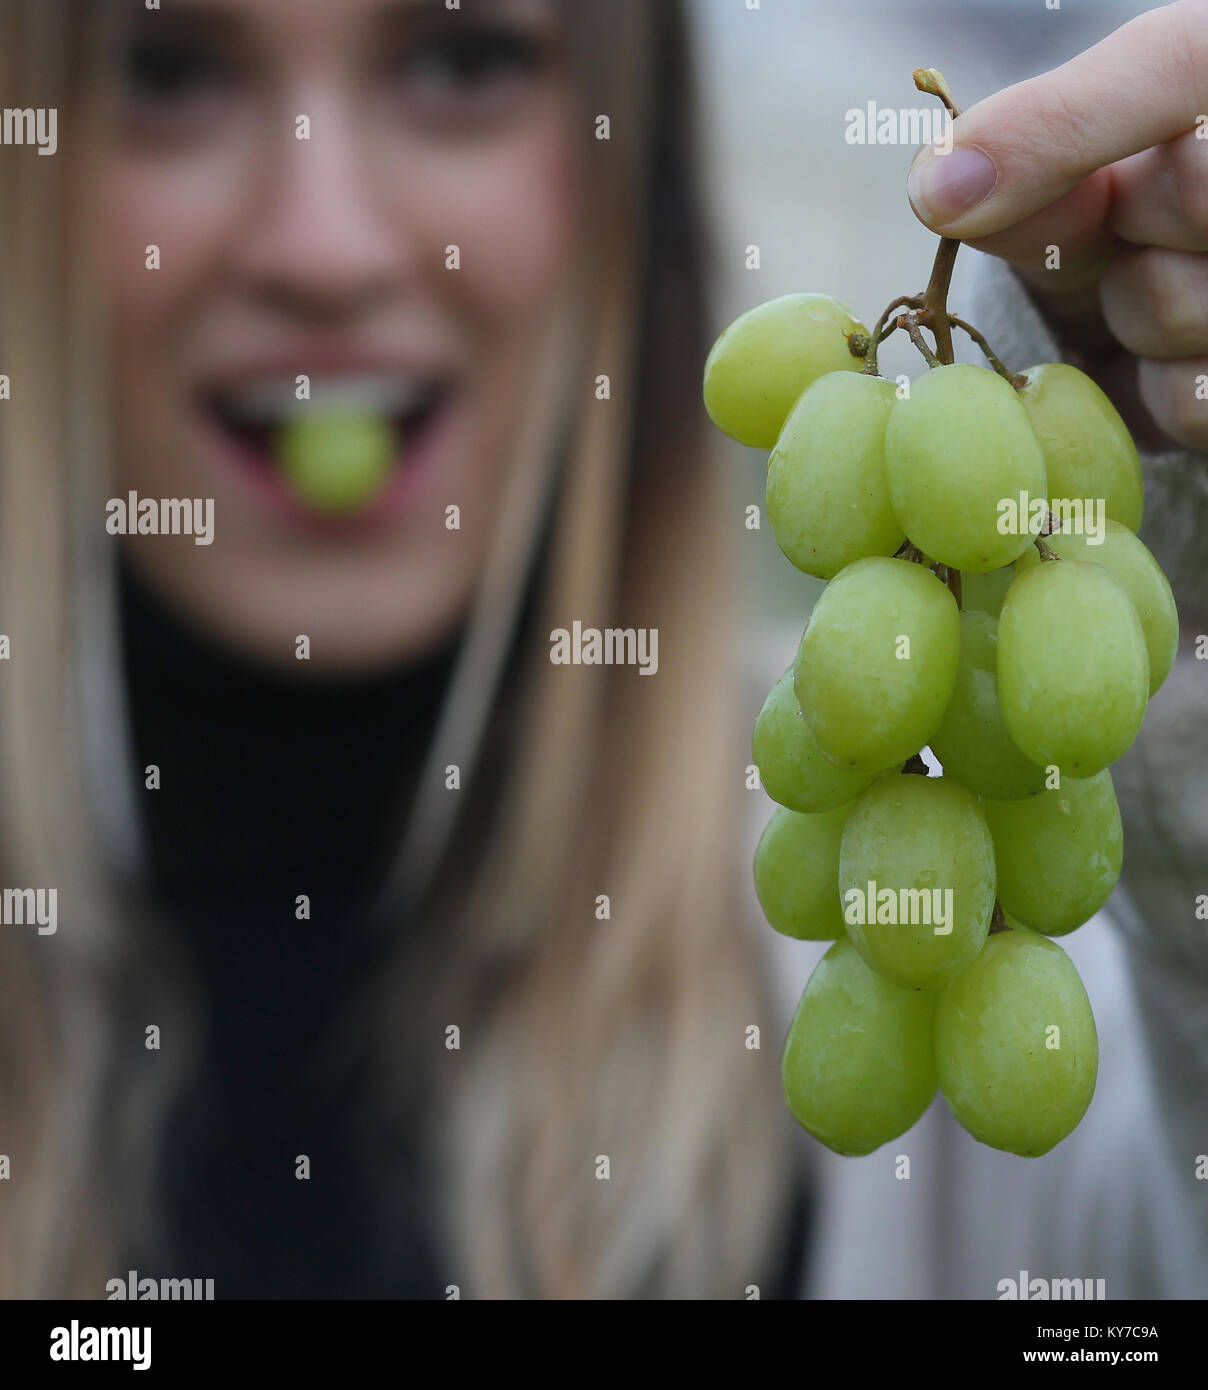 In Spain it's a tradition to eat twelve grapes for New Year's. A young woman eats grapes on New Year's - Stock Image